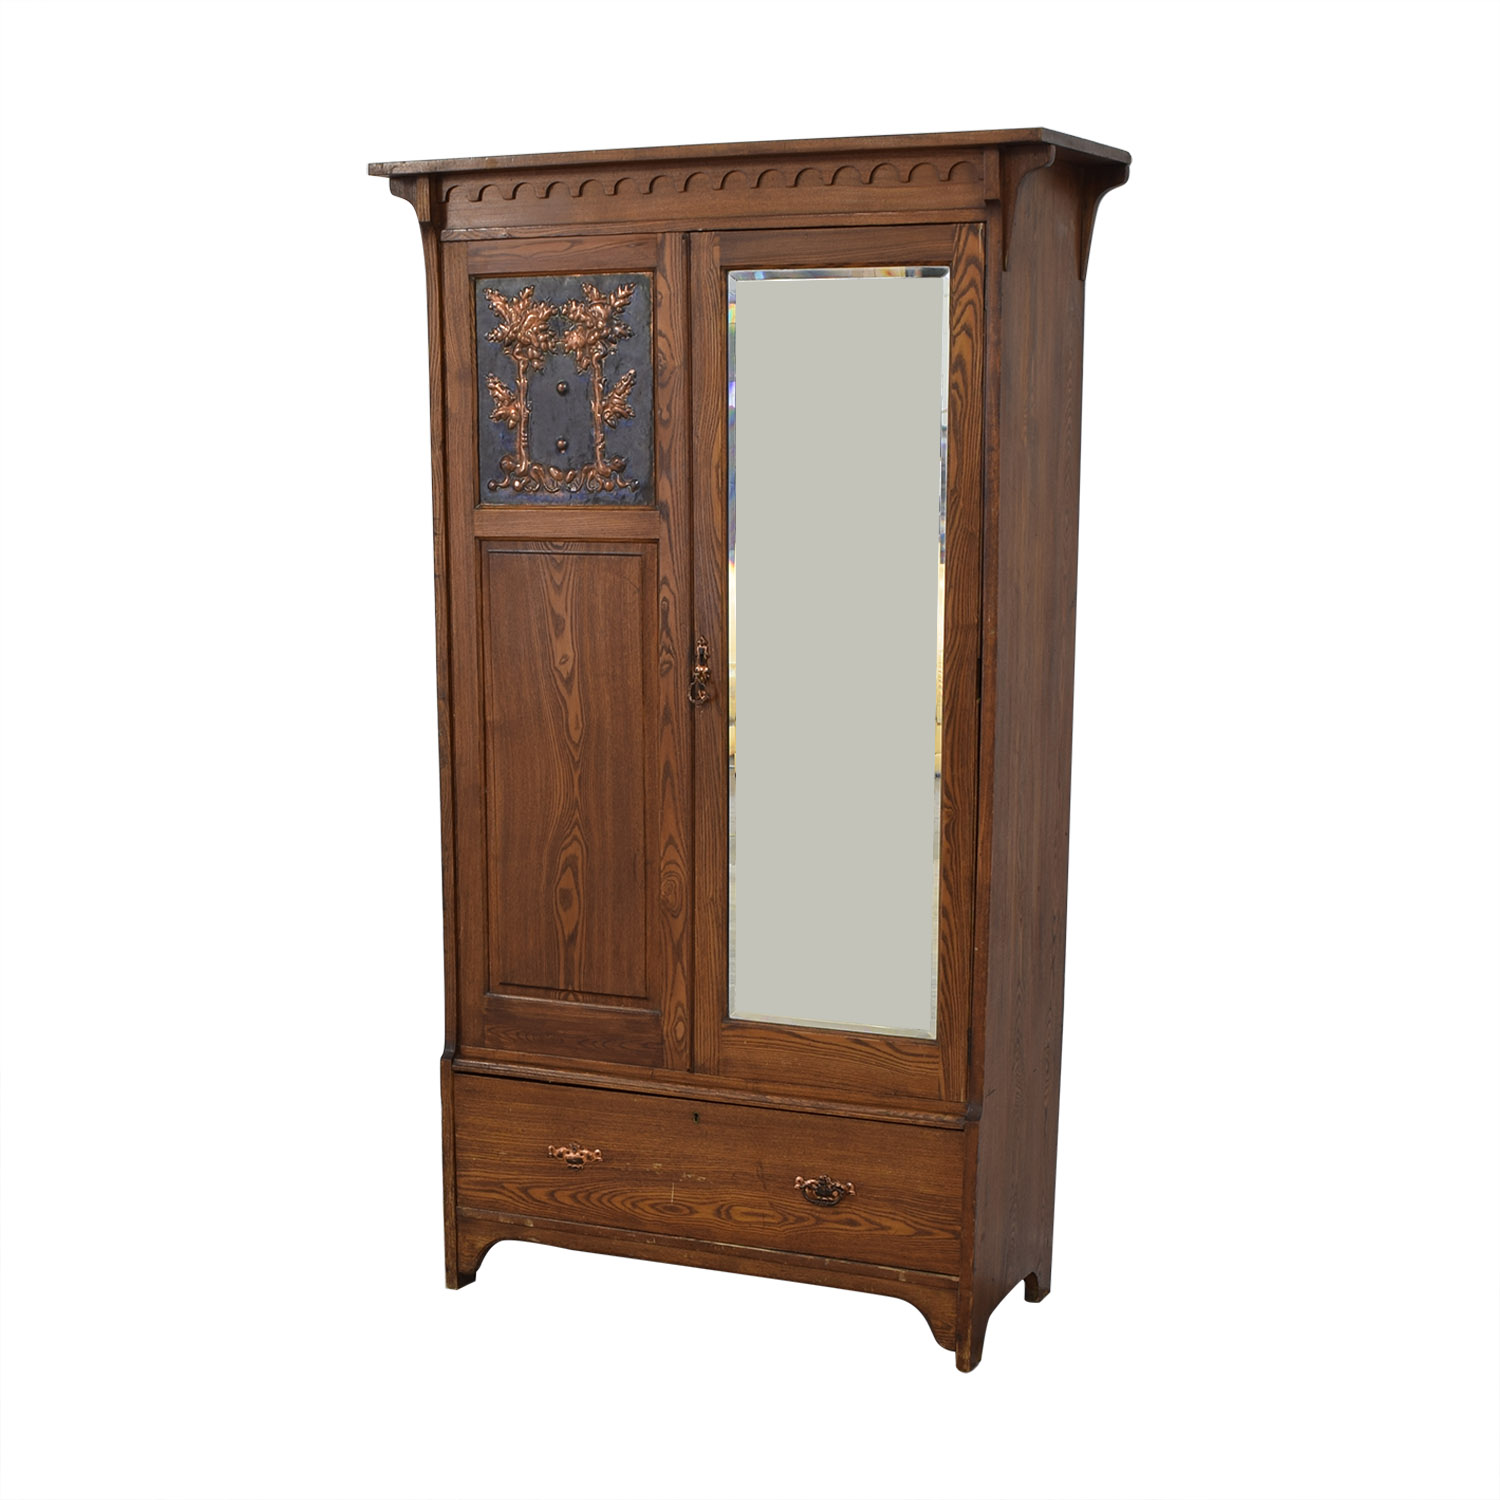 Vintage Arts and Crafts Armoire on sale